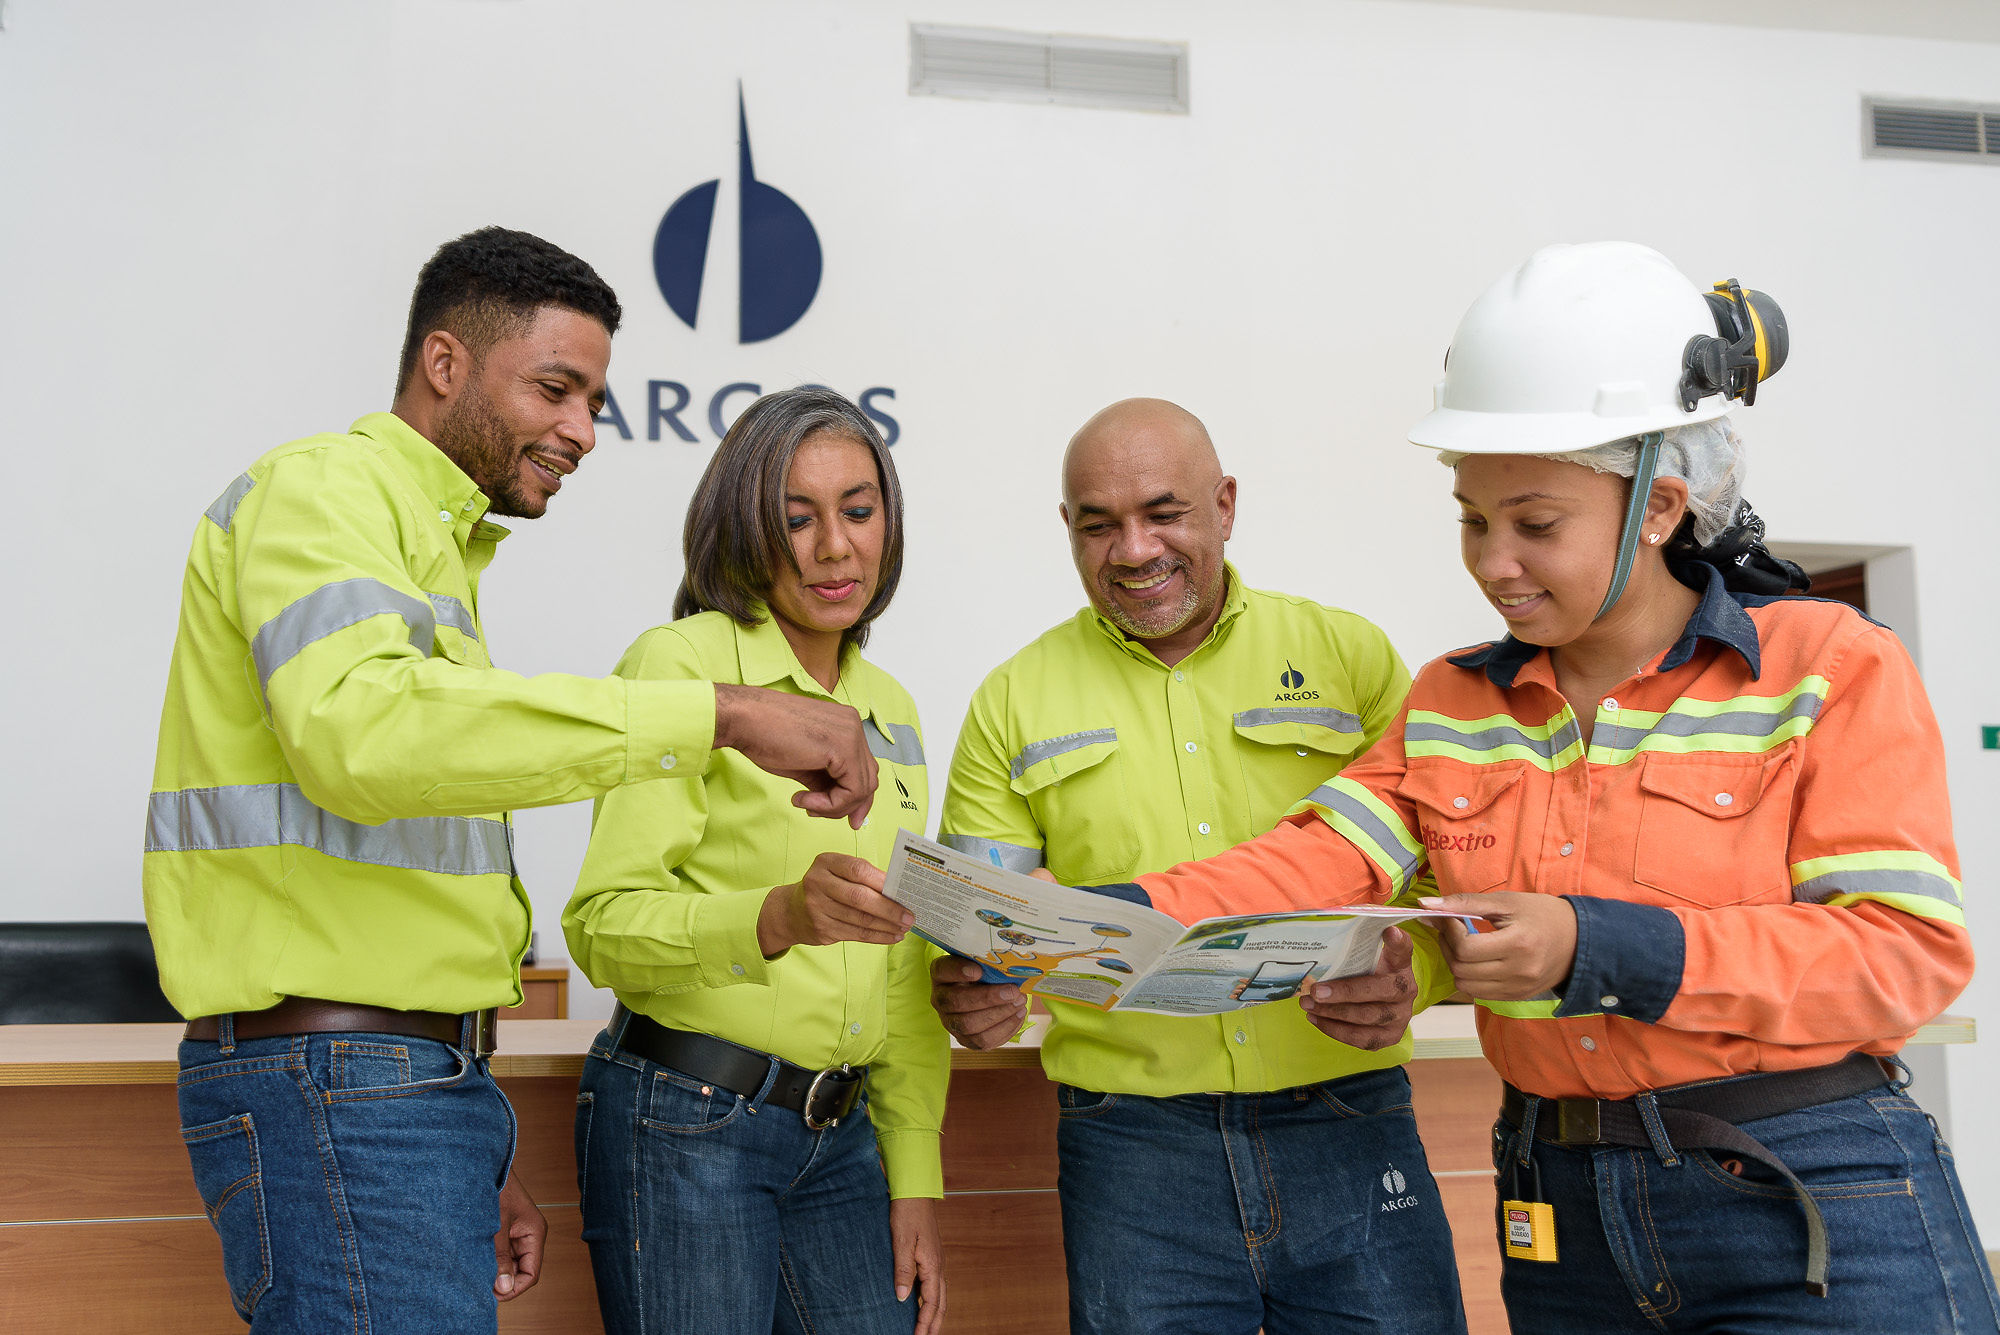 Argos celebrates 25 years of operation in the Dominican Republic